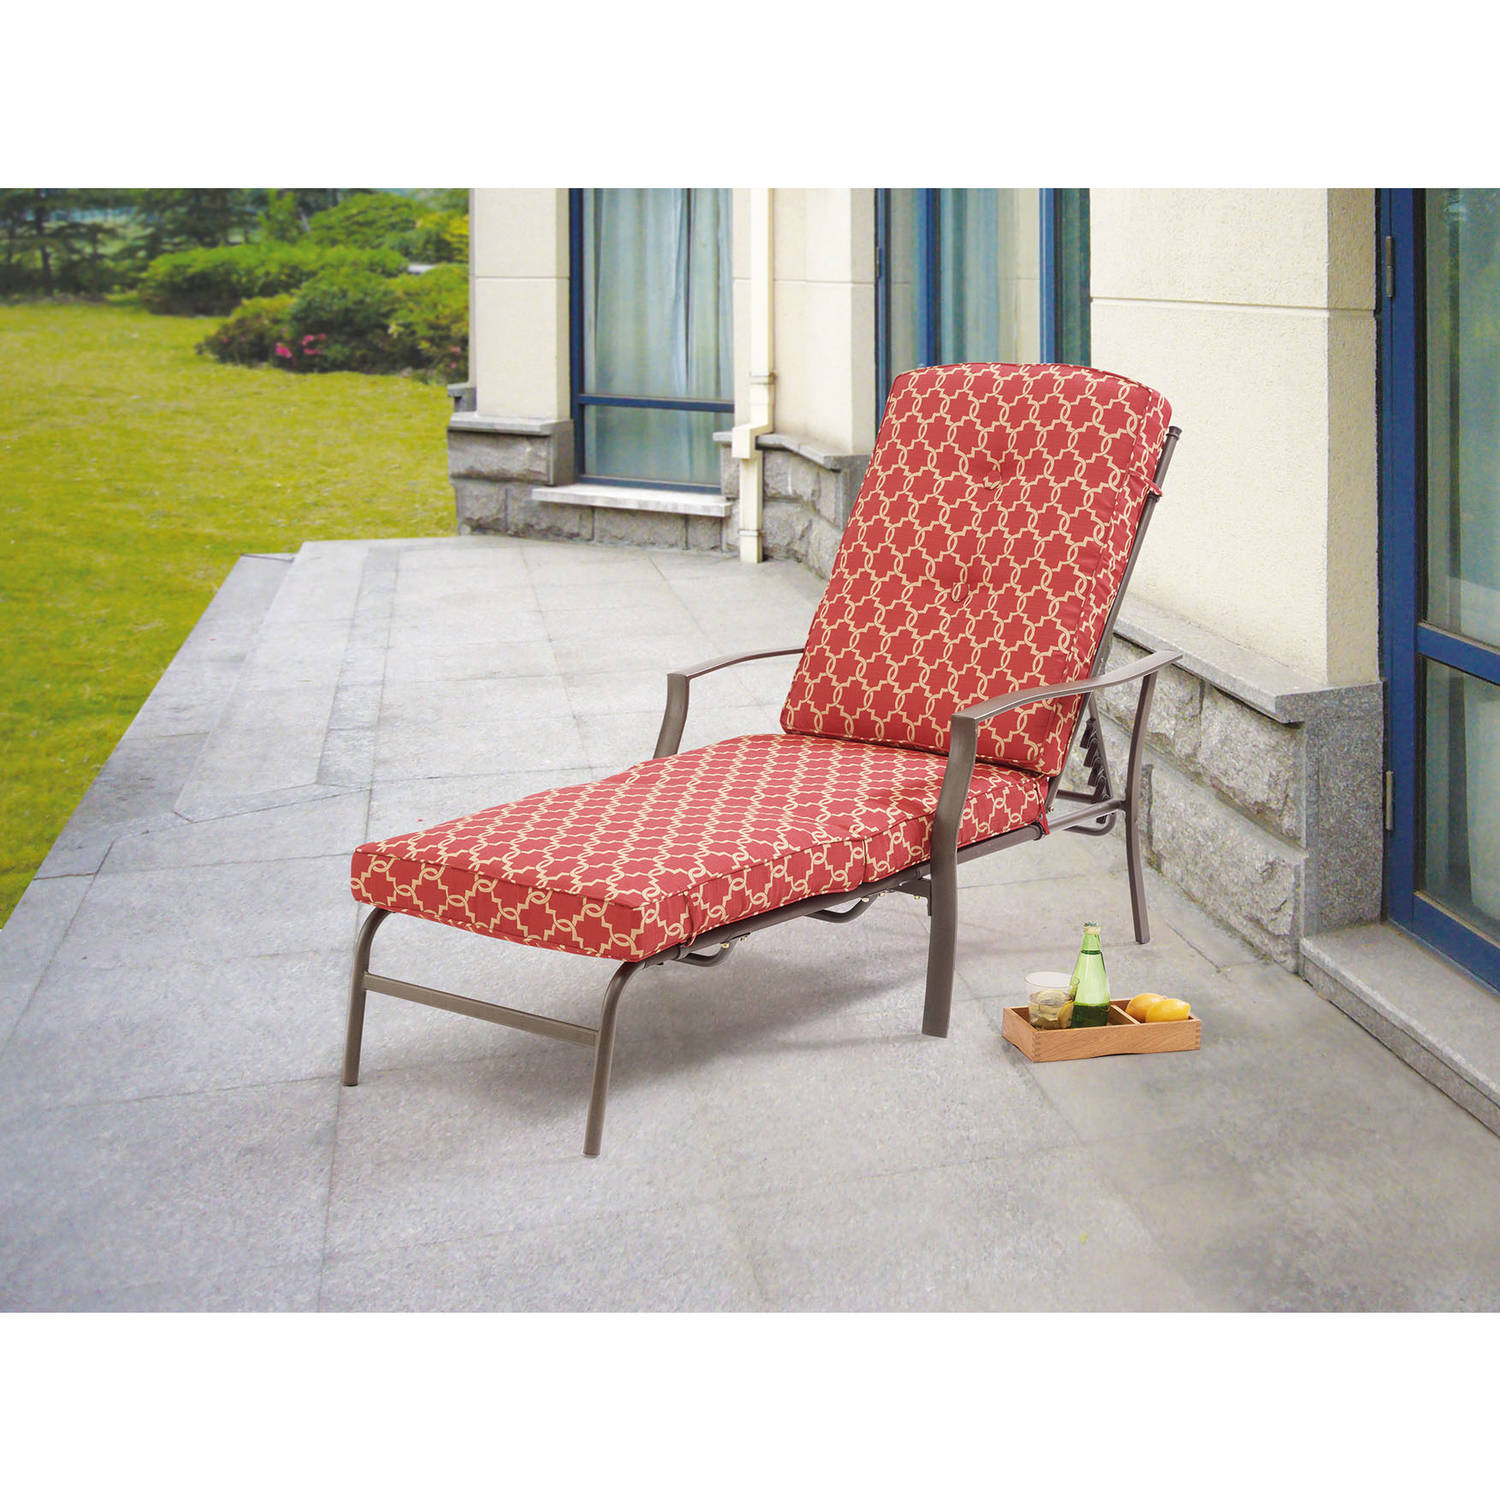 Jordan Manufacturing Outdoor Patio French Edge Chaise Cushion